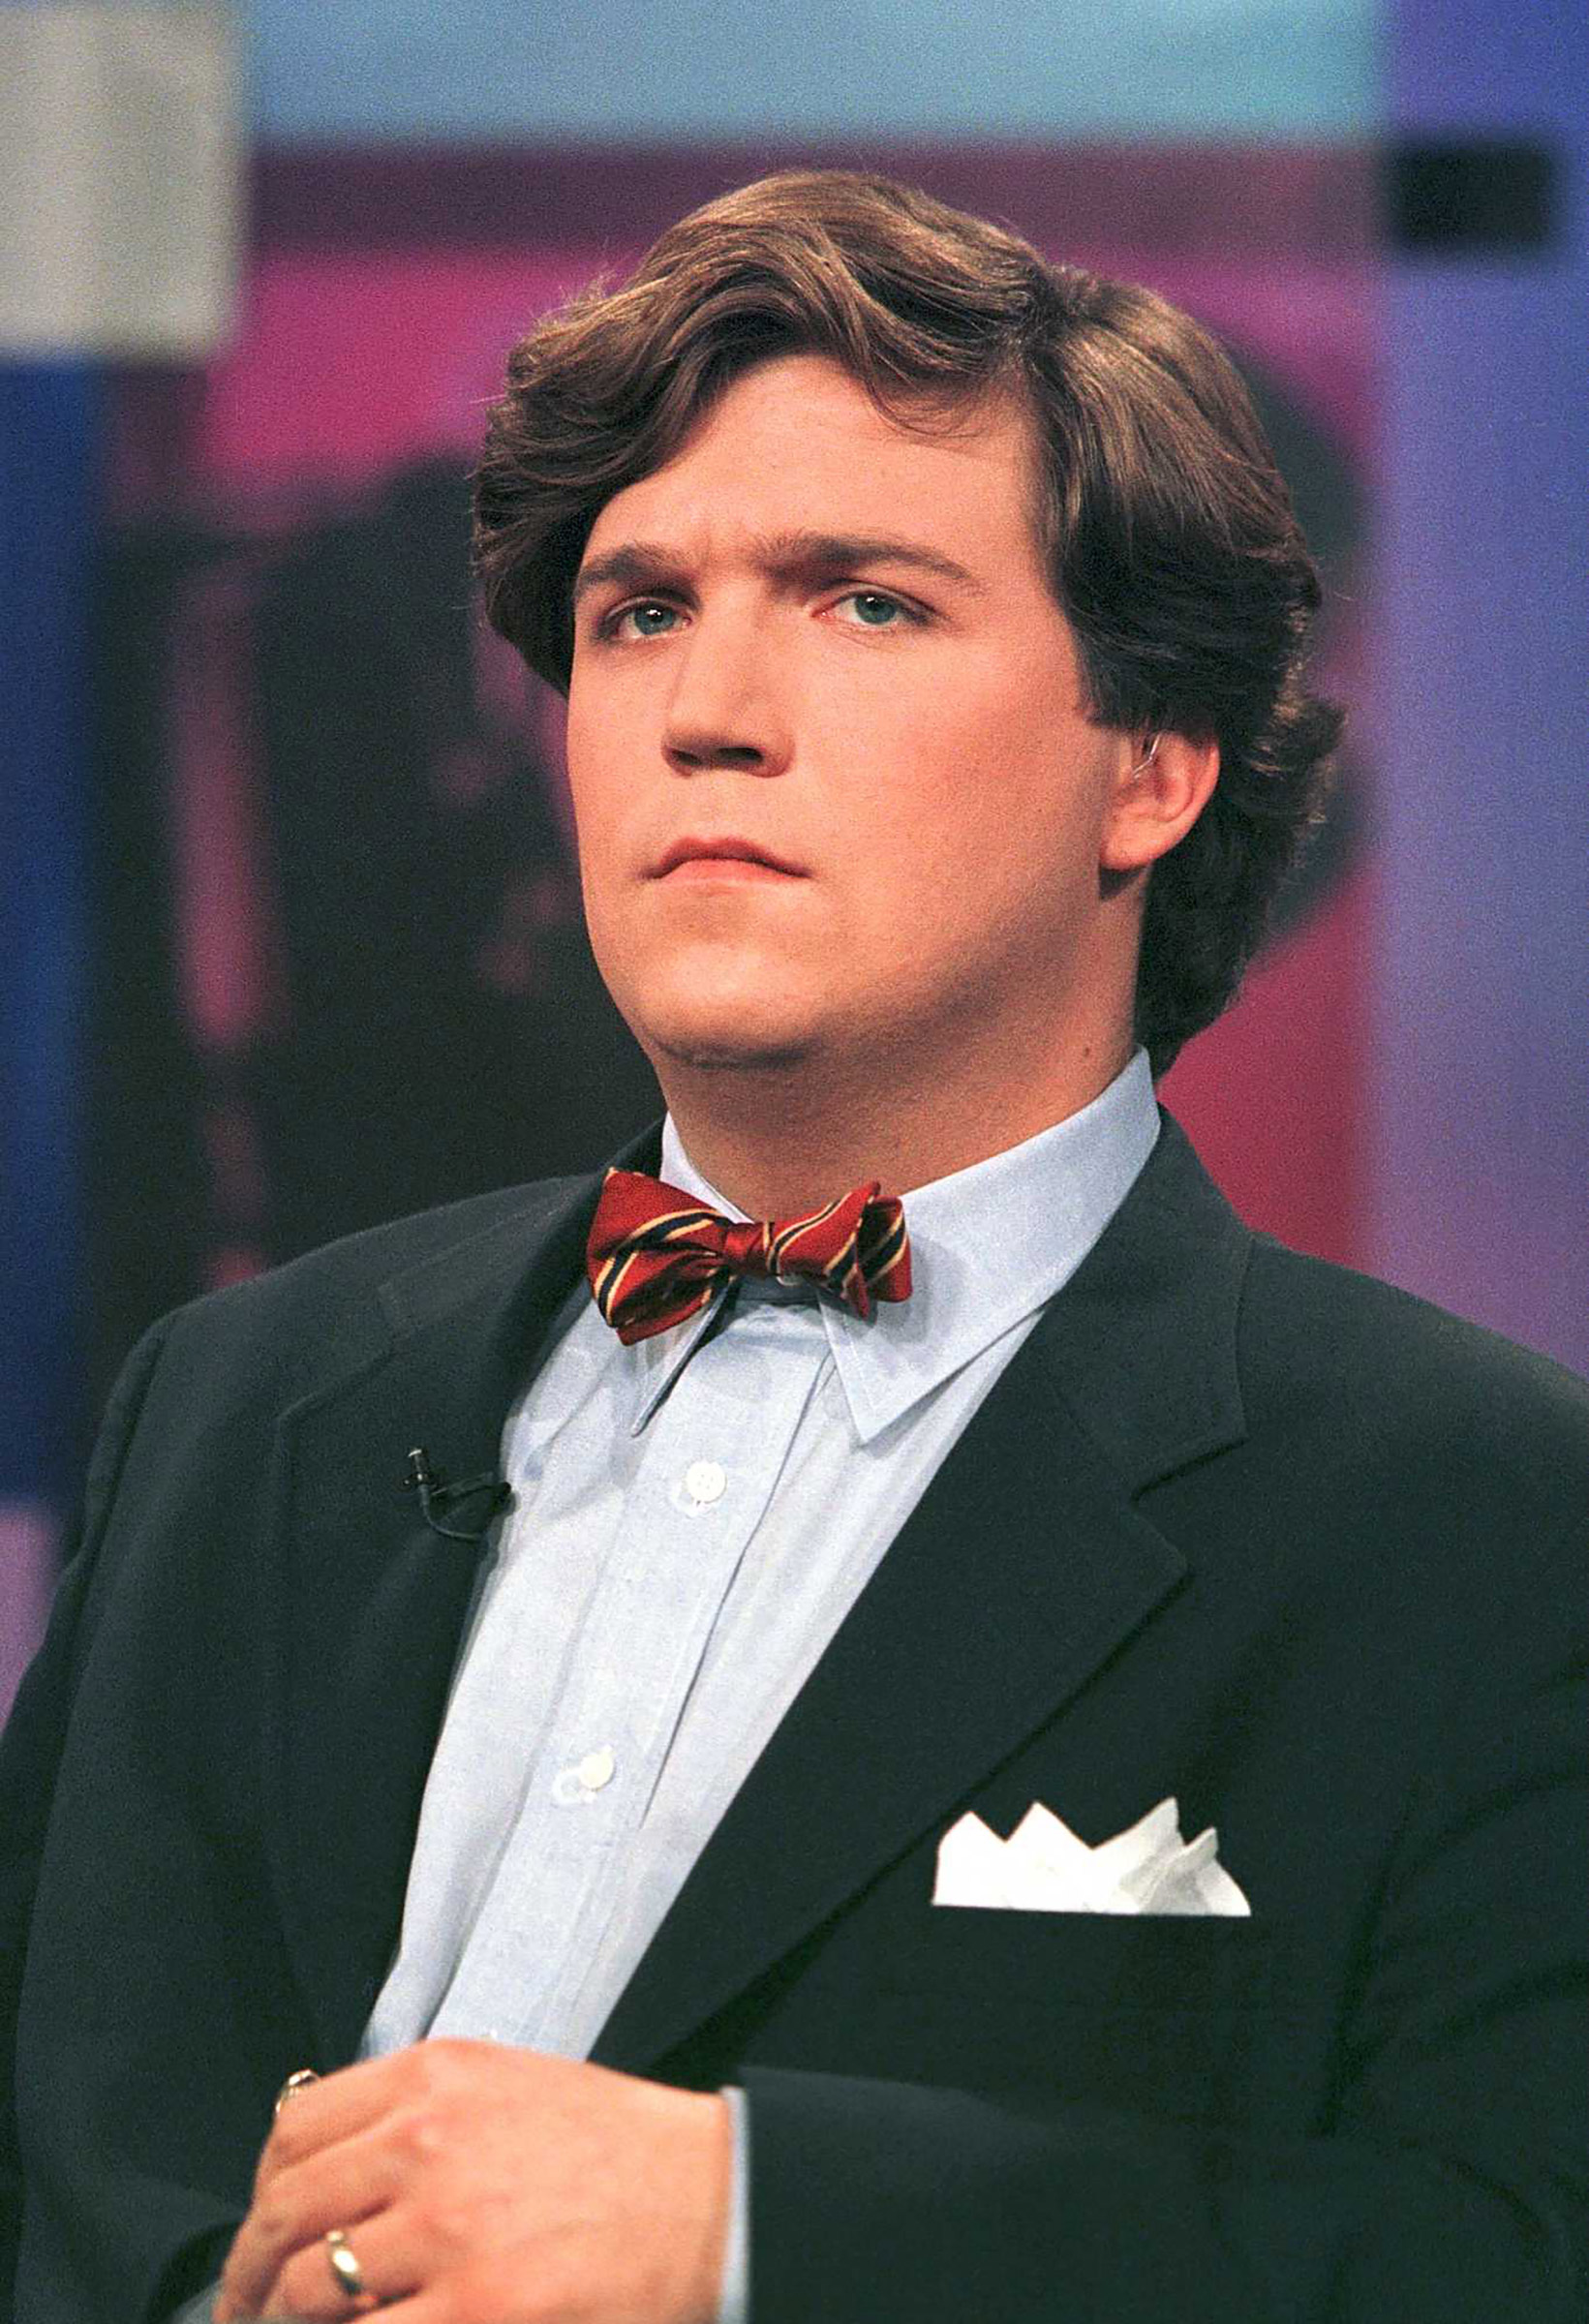 Early in his career as a writer during the 1990's Carlson was known for always wearing a bow tie.